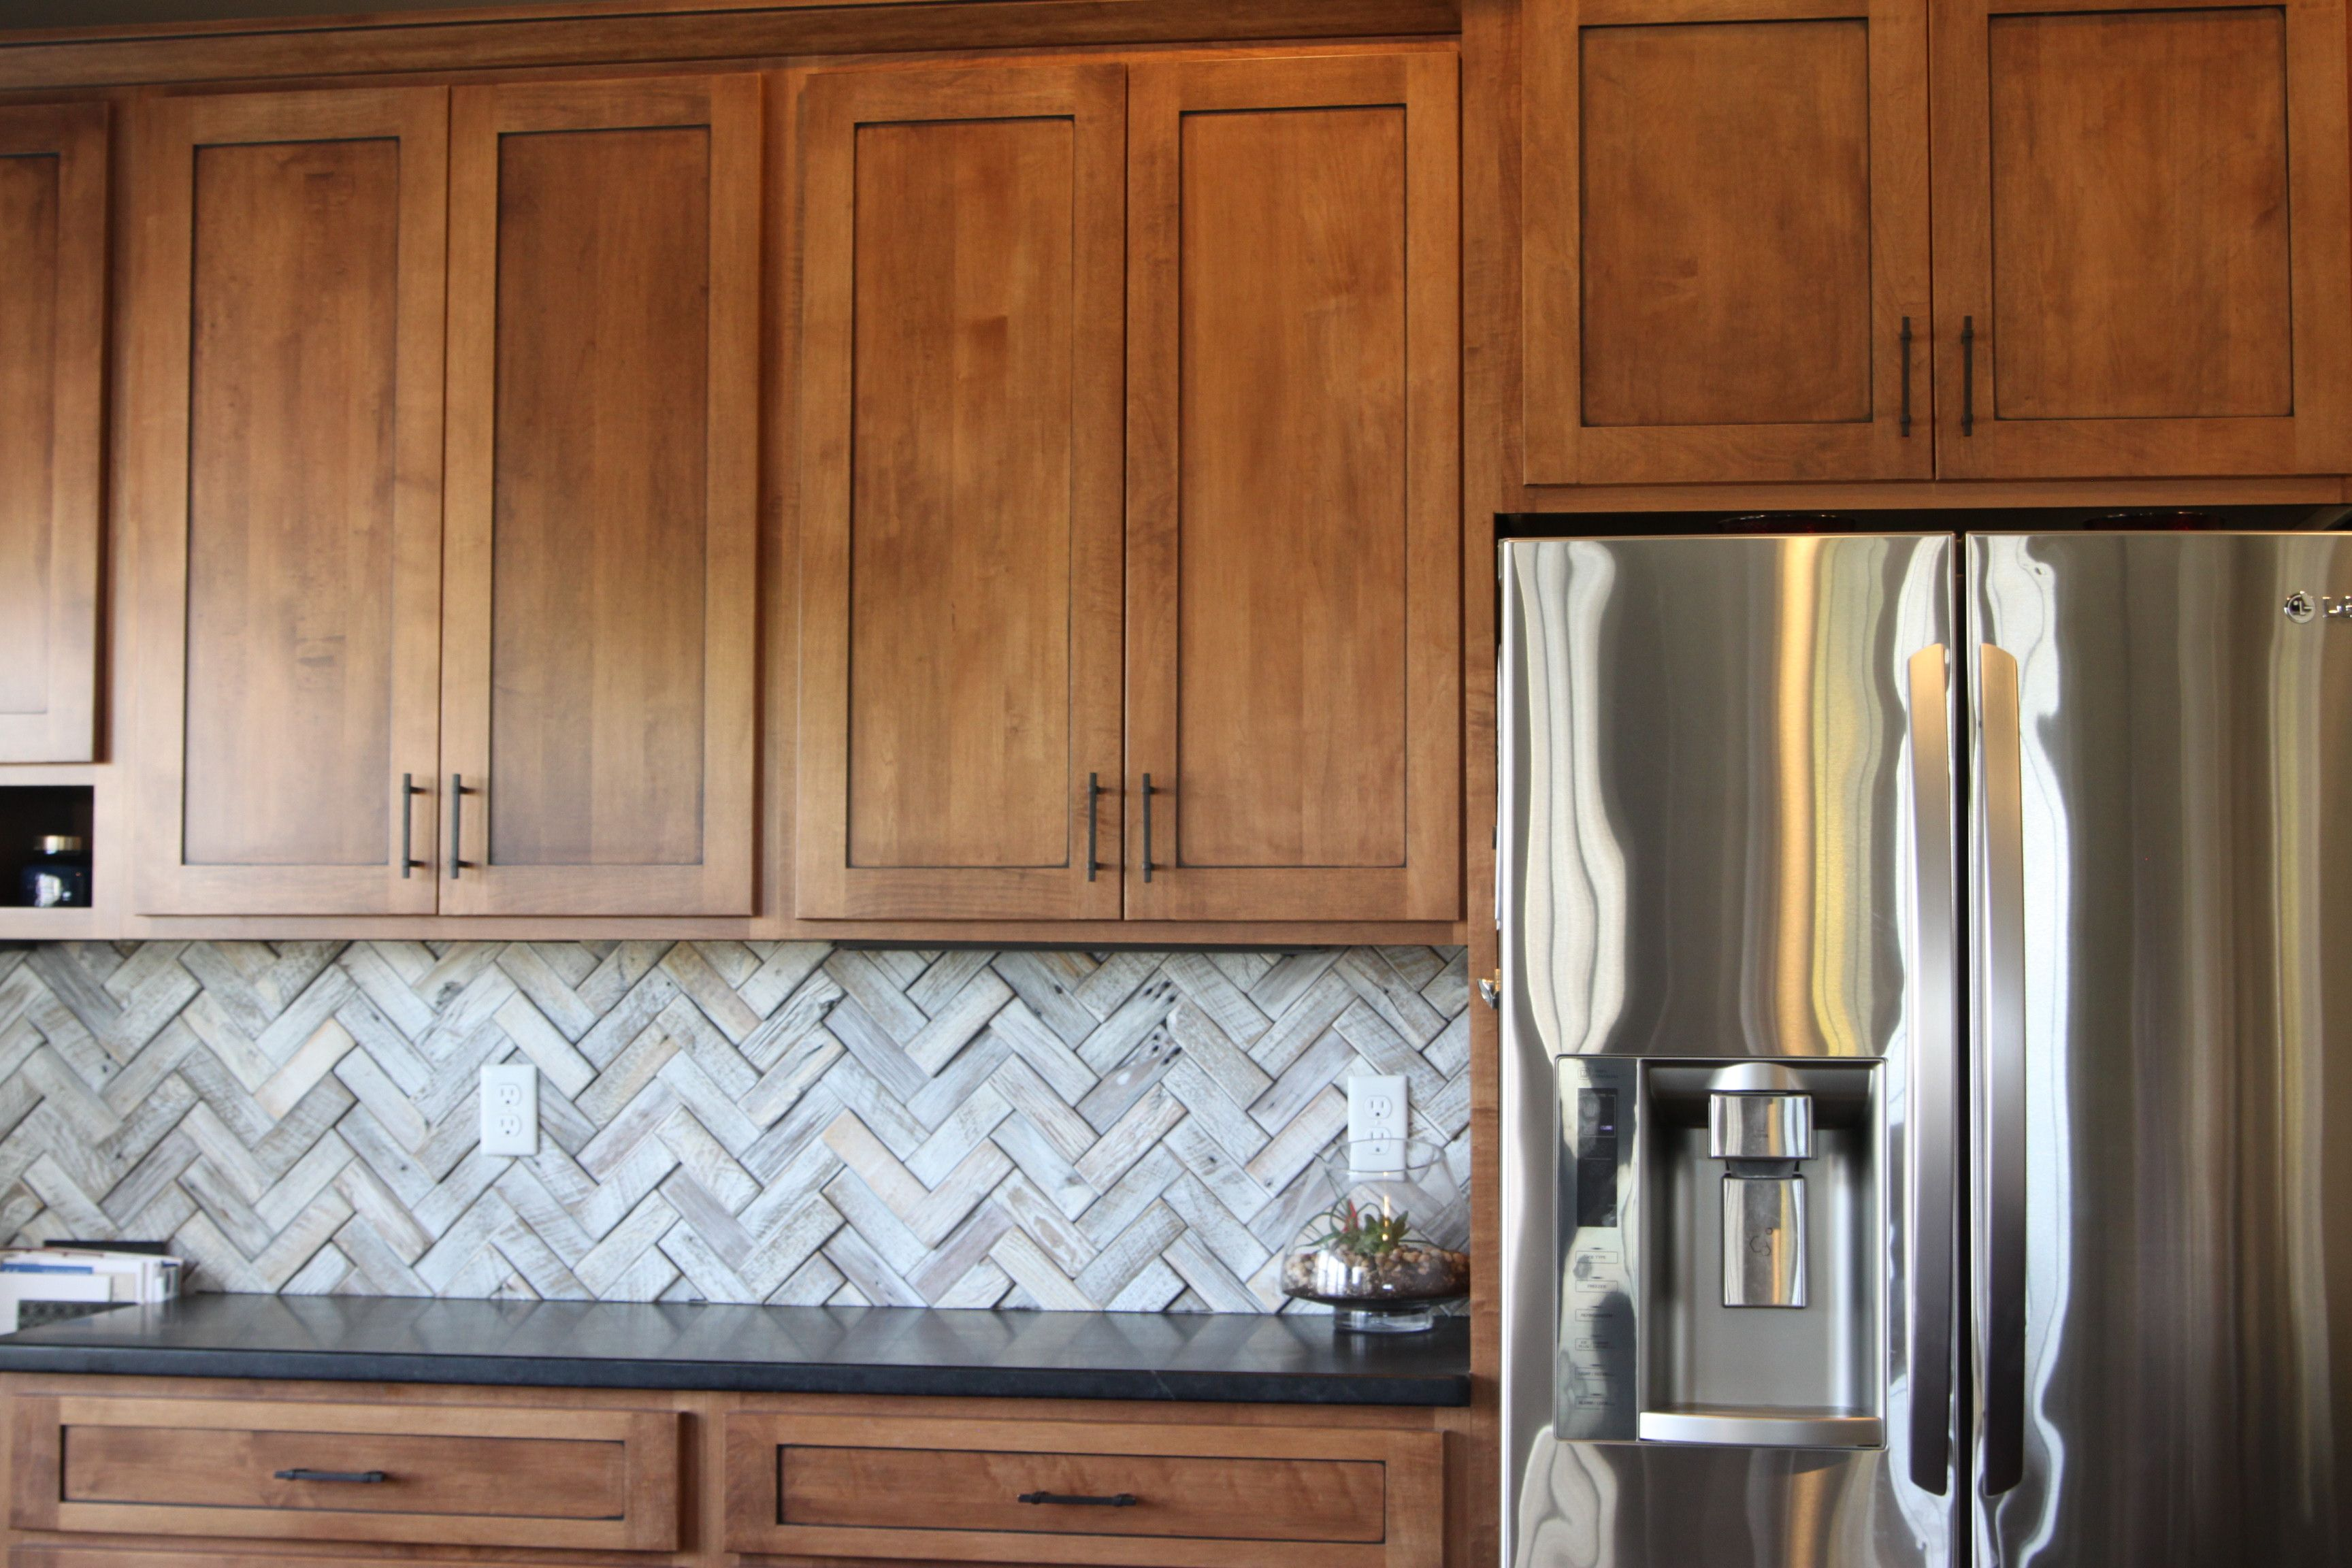 Awe Inspiring Herringbone Backsplash Ideas For The Casa Wood Tile Home Interior And Landscaping Ferensignezvosmurscom